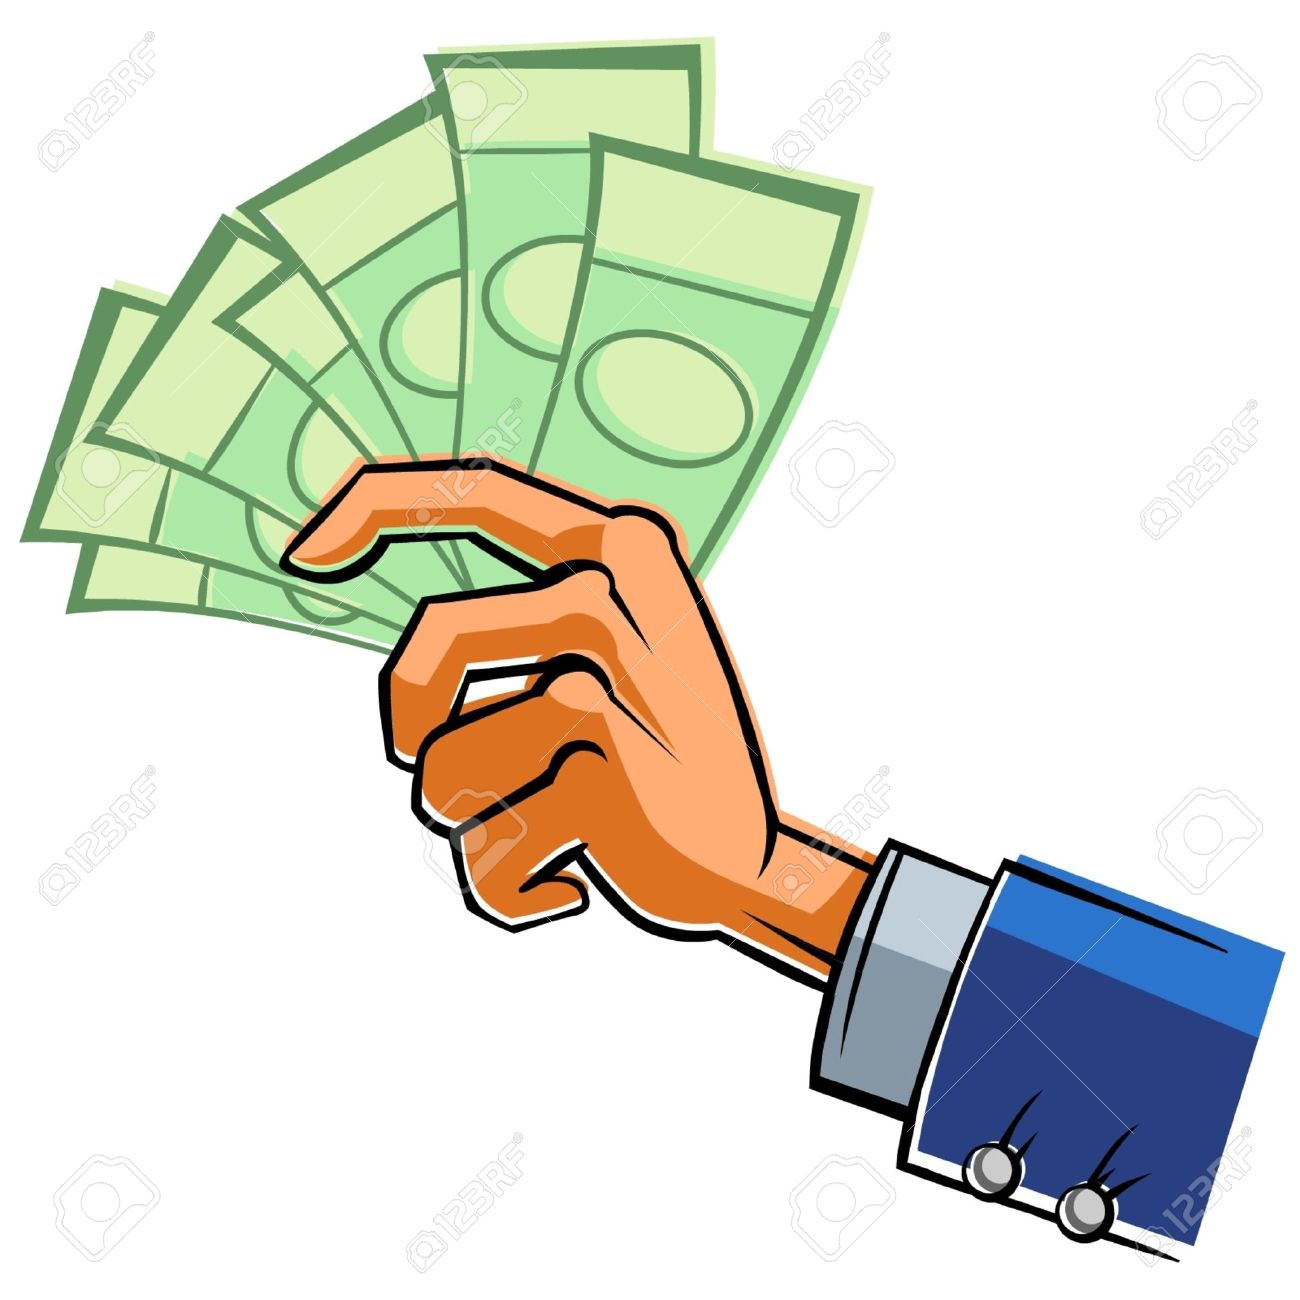 Hand with banknotes. Stock Vector - 9382073